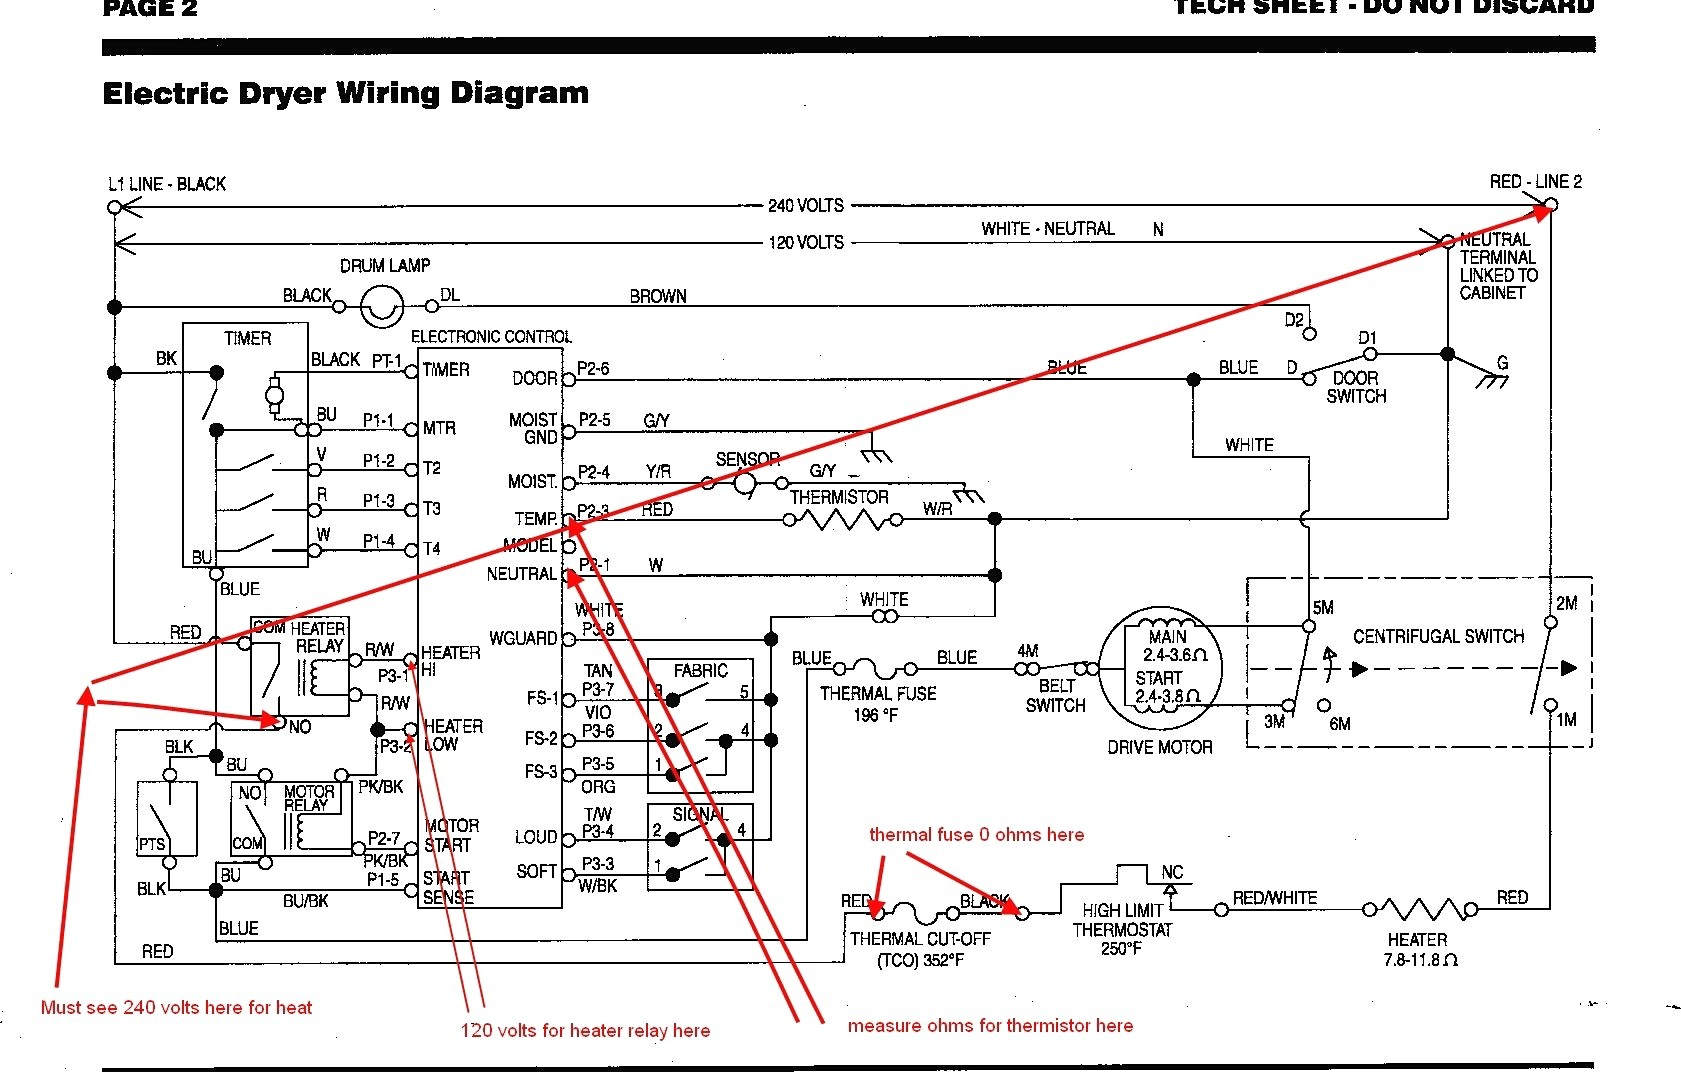 Whirlpool Duet Dryer Heating Element Wiring Diagram Unique Wiring